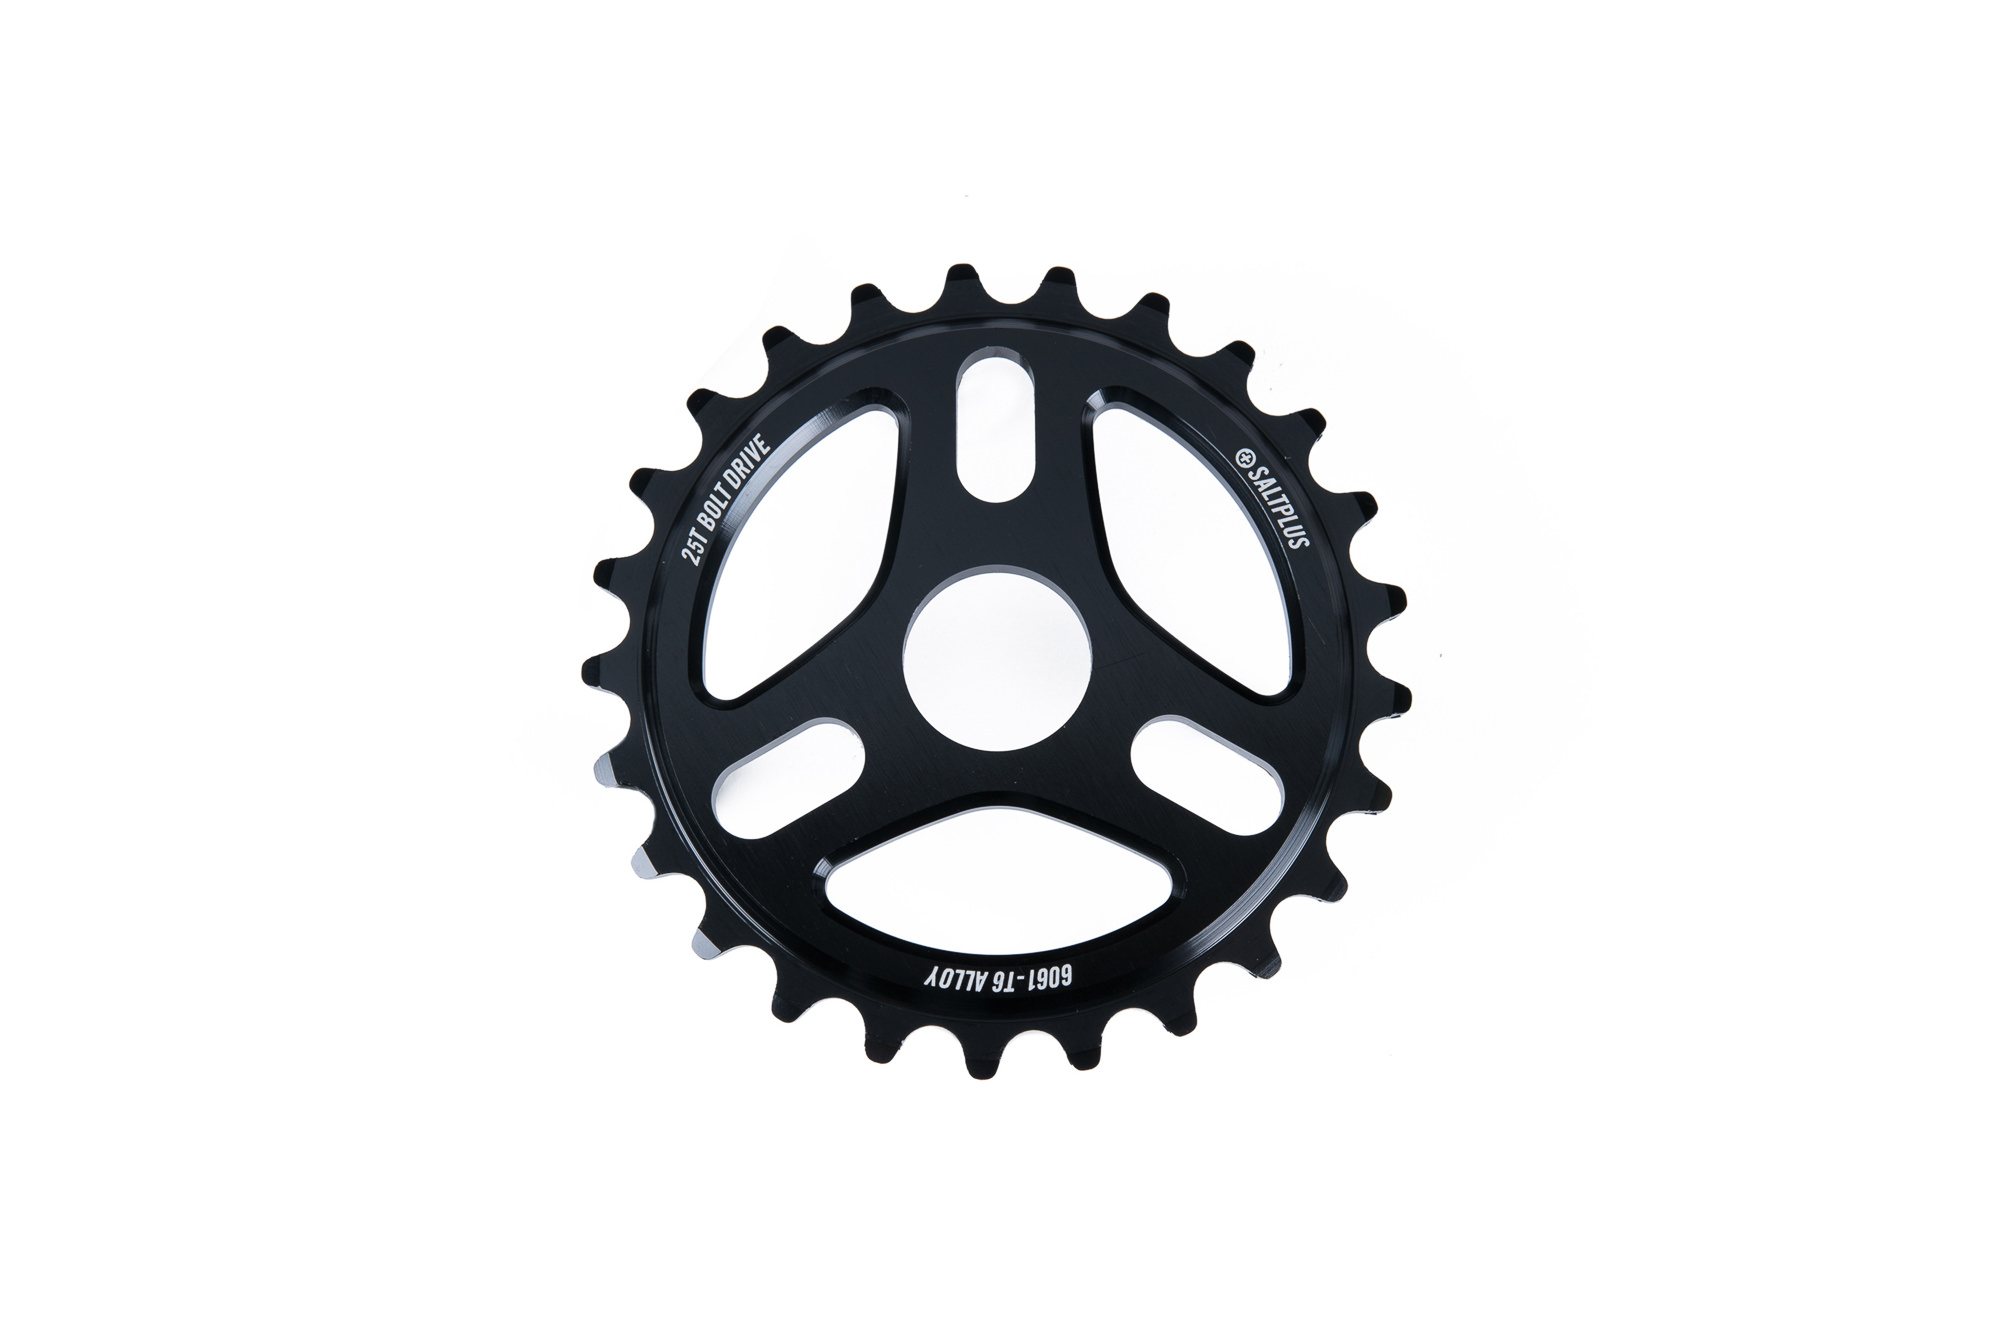 SaltPlus_Trident_sprocket_black_01